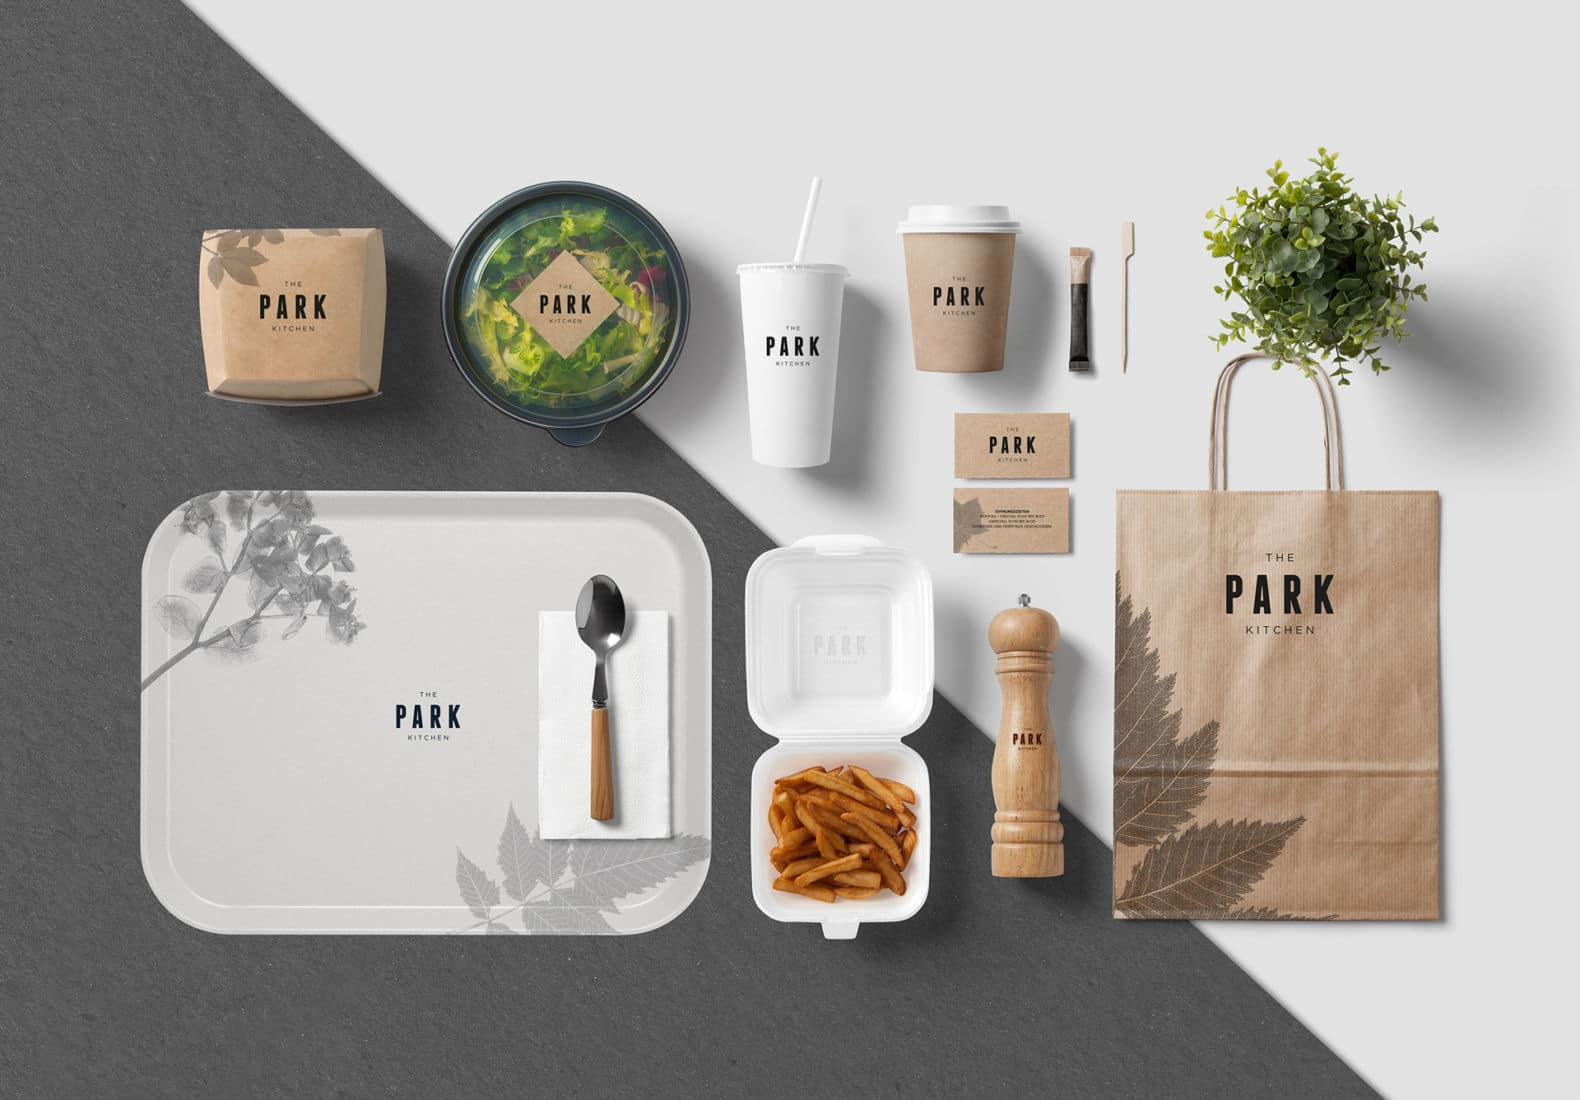 Erste Campus The Park Kitchen Branding